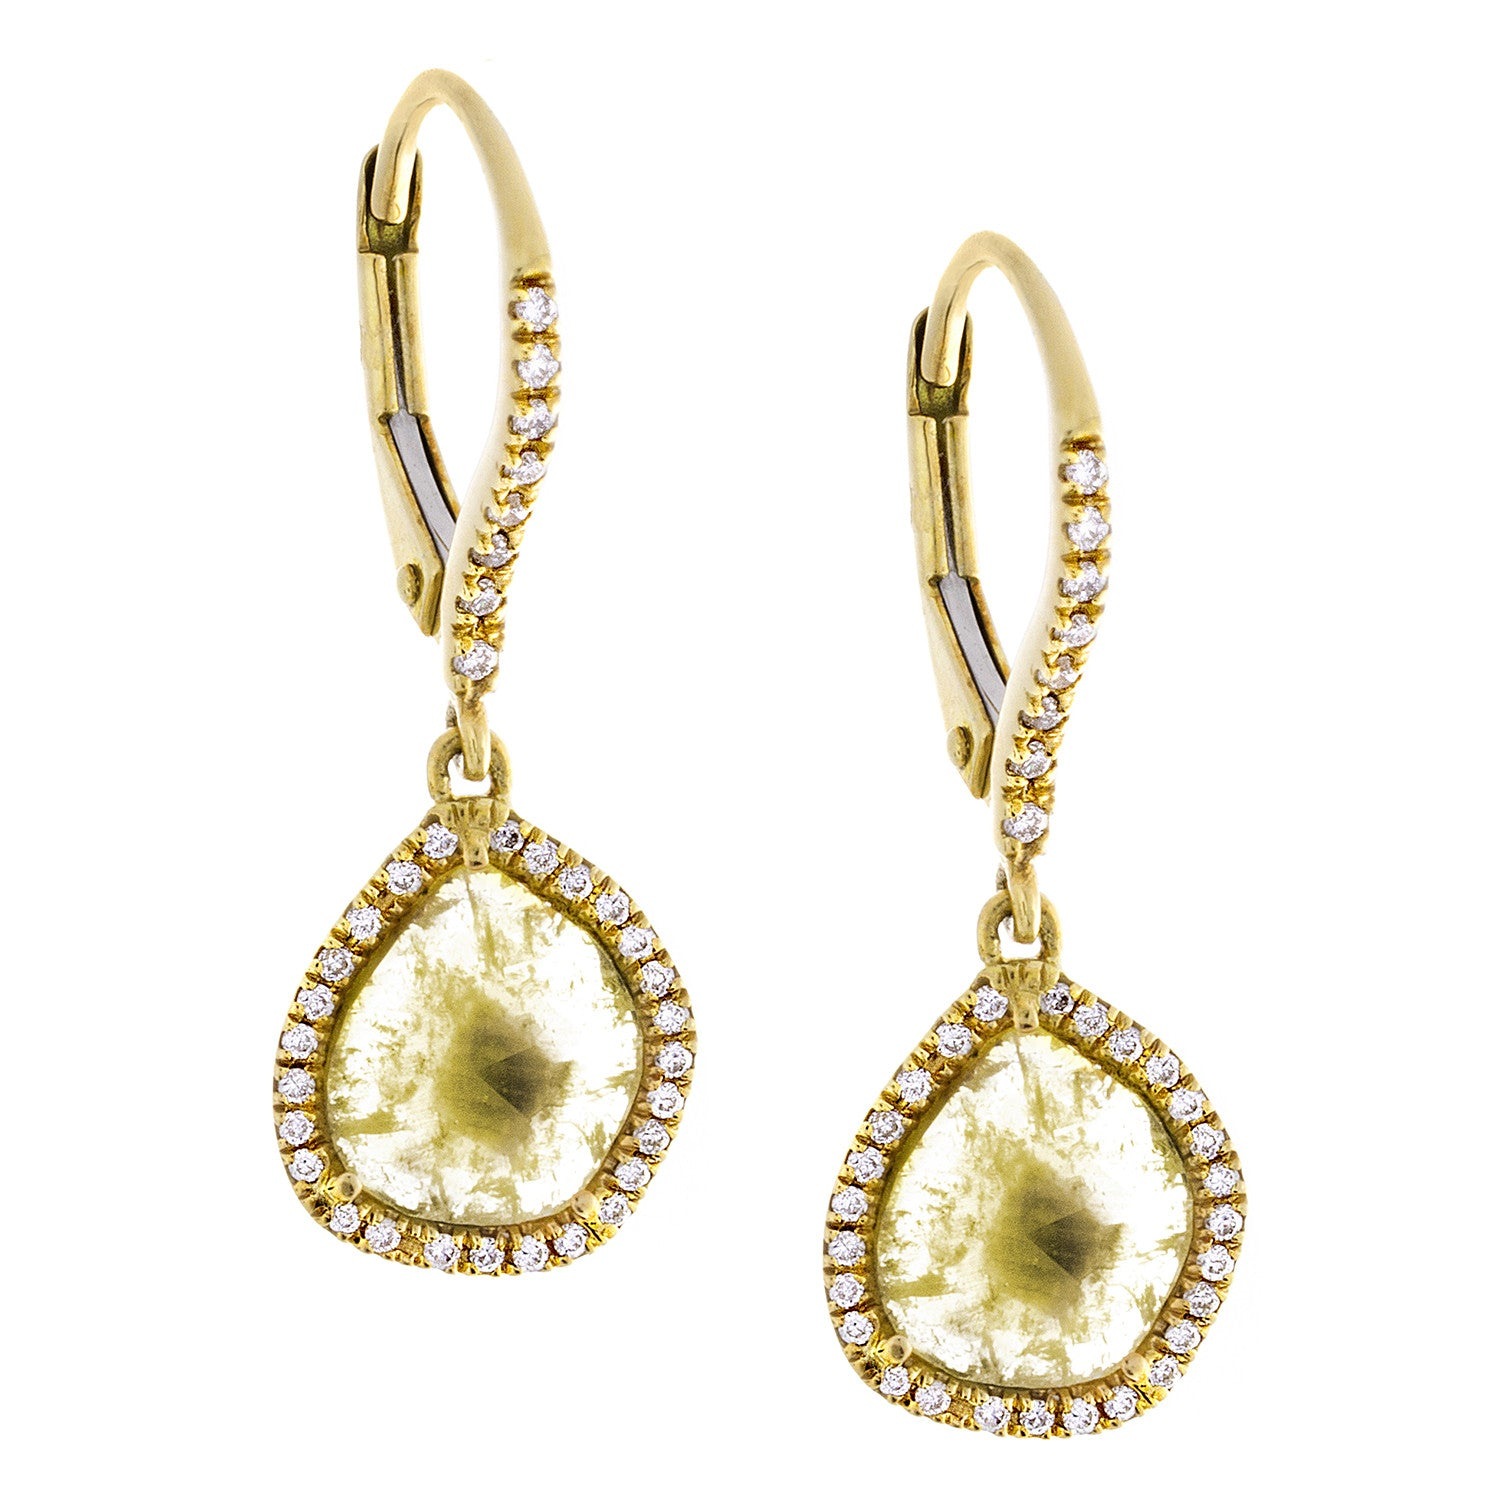 Sliced Yellow Diamond, White Pavé & 18K Yellow Gold Drop Earrings- SOLD/CAN BE SPECIAL ORDERED WITH 4-6 WEEKS DELIVERY TIME FRAME